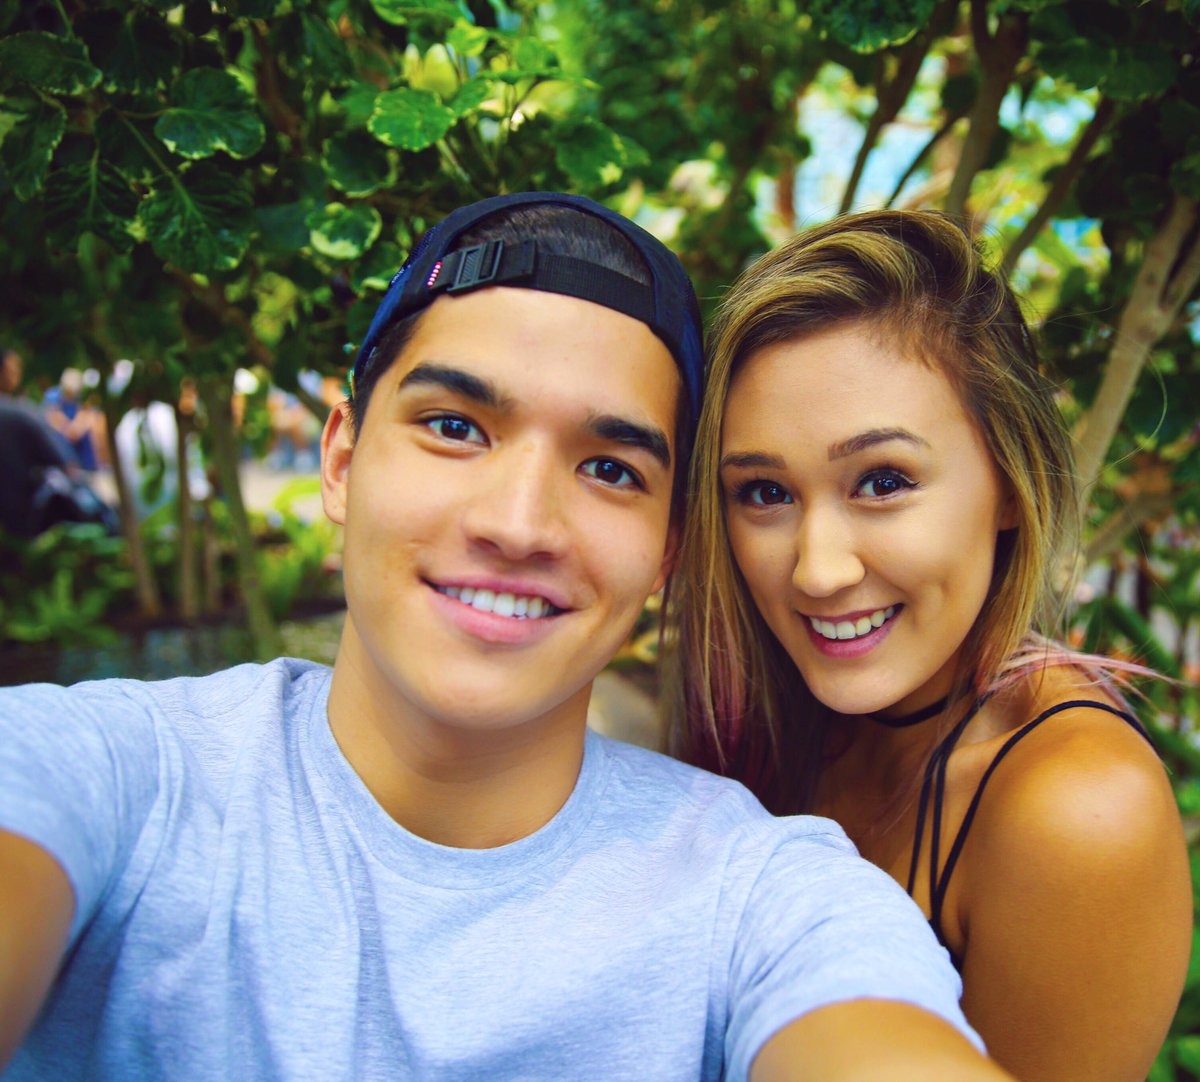 laurdiy and alex dating High quality laurdiy inspired laurdiy framed prints 7 youtube, alex wassabi, cute, mylifeaseva, youtuber, adventure, alex and lauren, alex wassabi girlfriend.